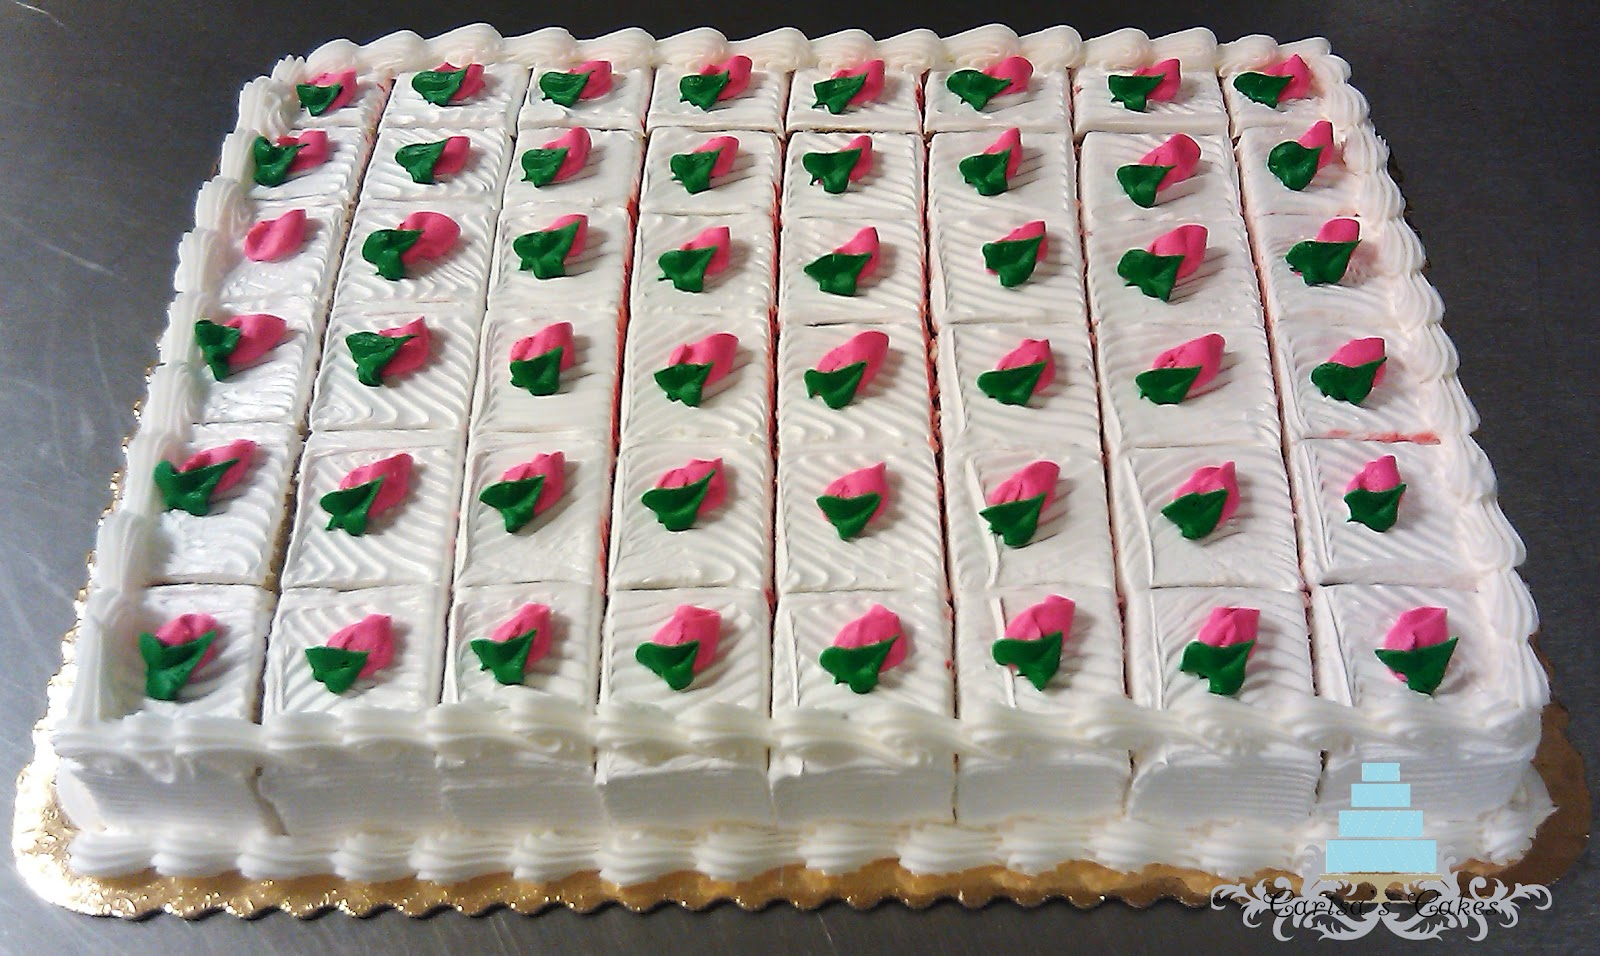 Costco Baby Shower Cakes Time Capsule Ideas For Baby Shower Baby